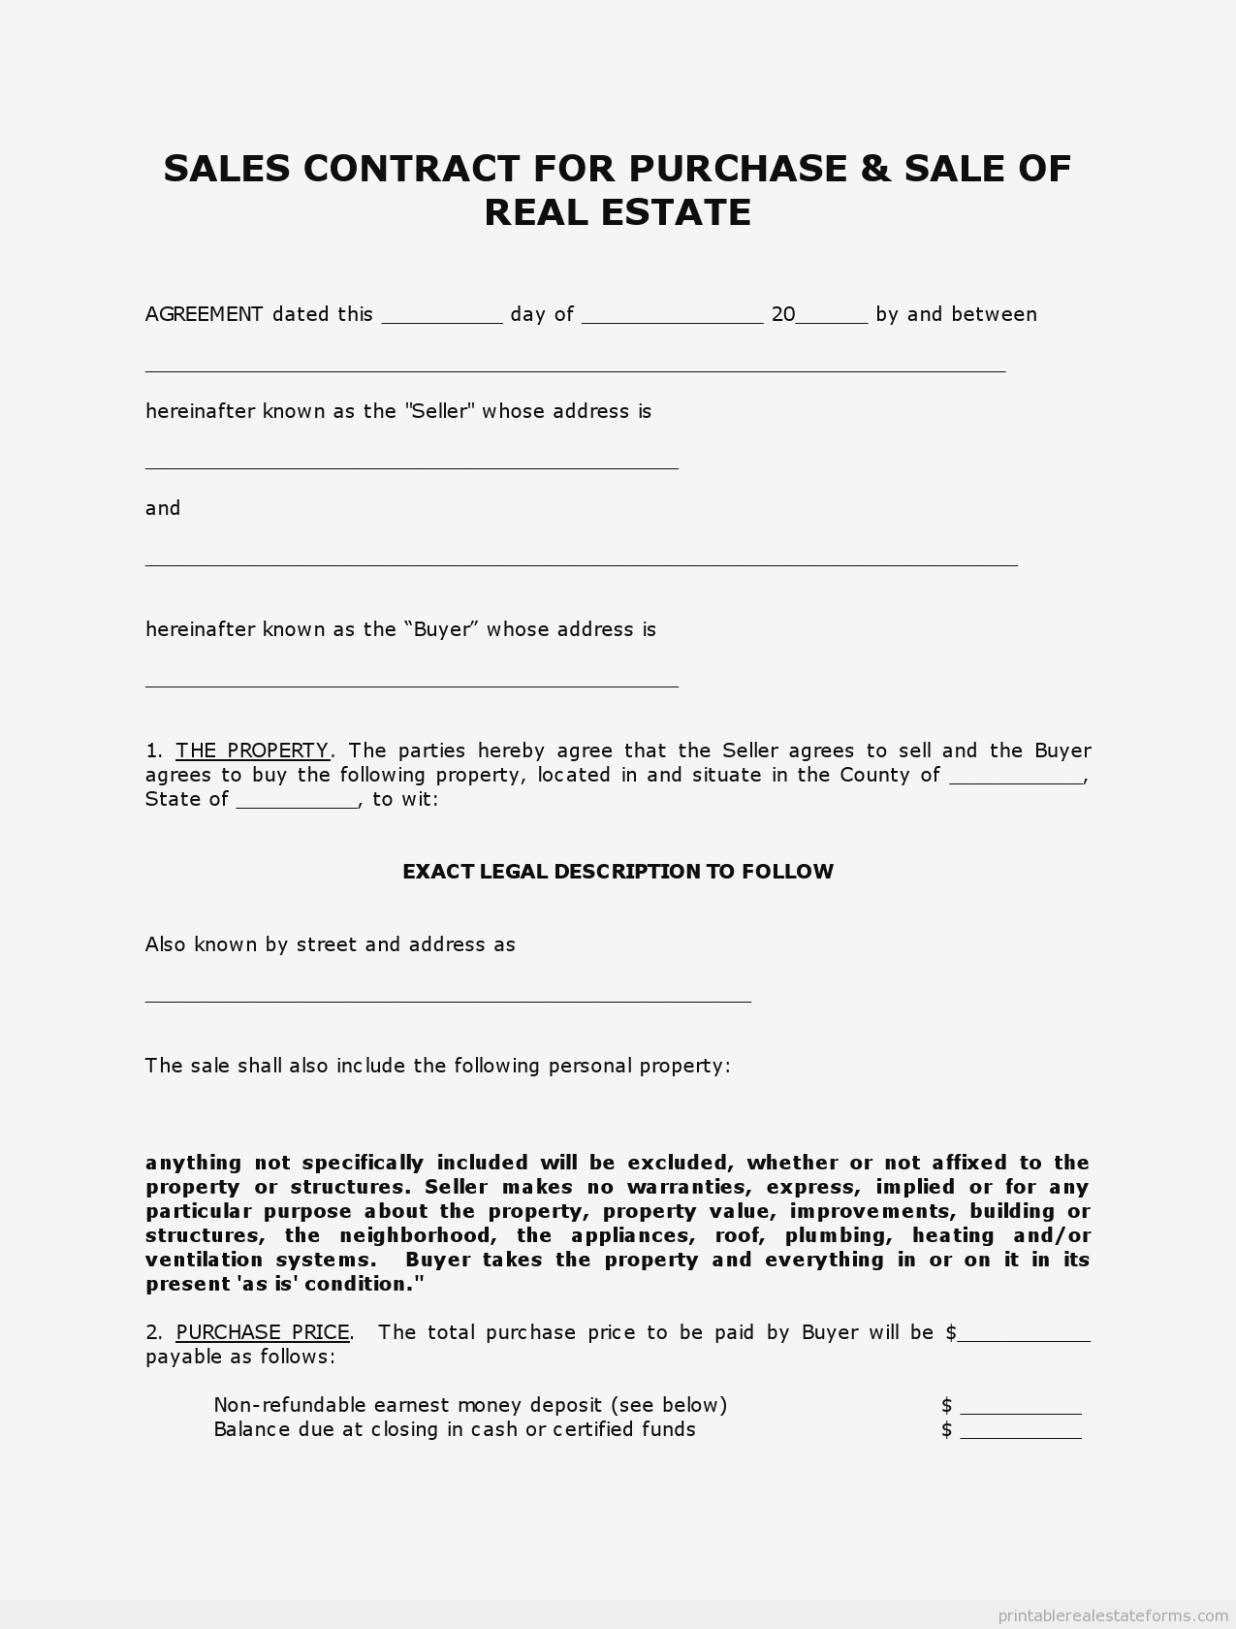 Indiana Real Estate Purchase Agreement 10 Simple Free Printable - Free Printable Real Estate Contracts